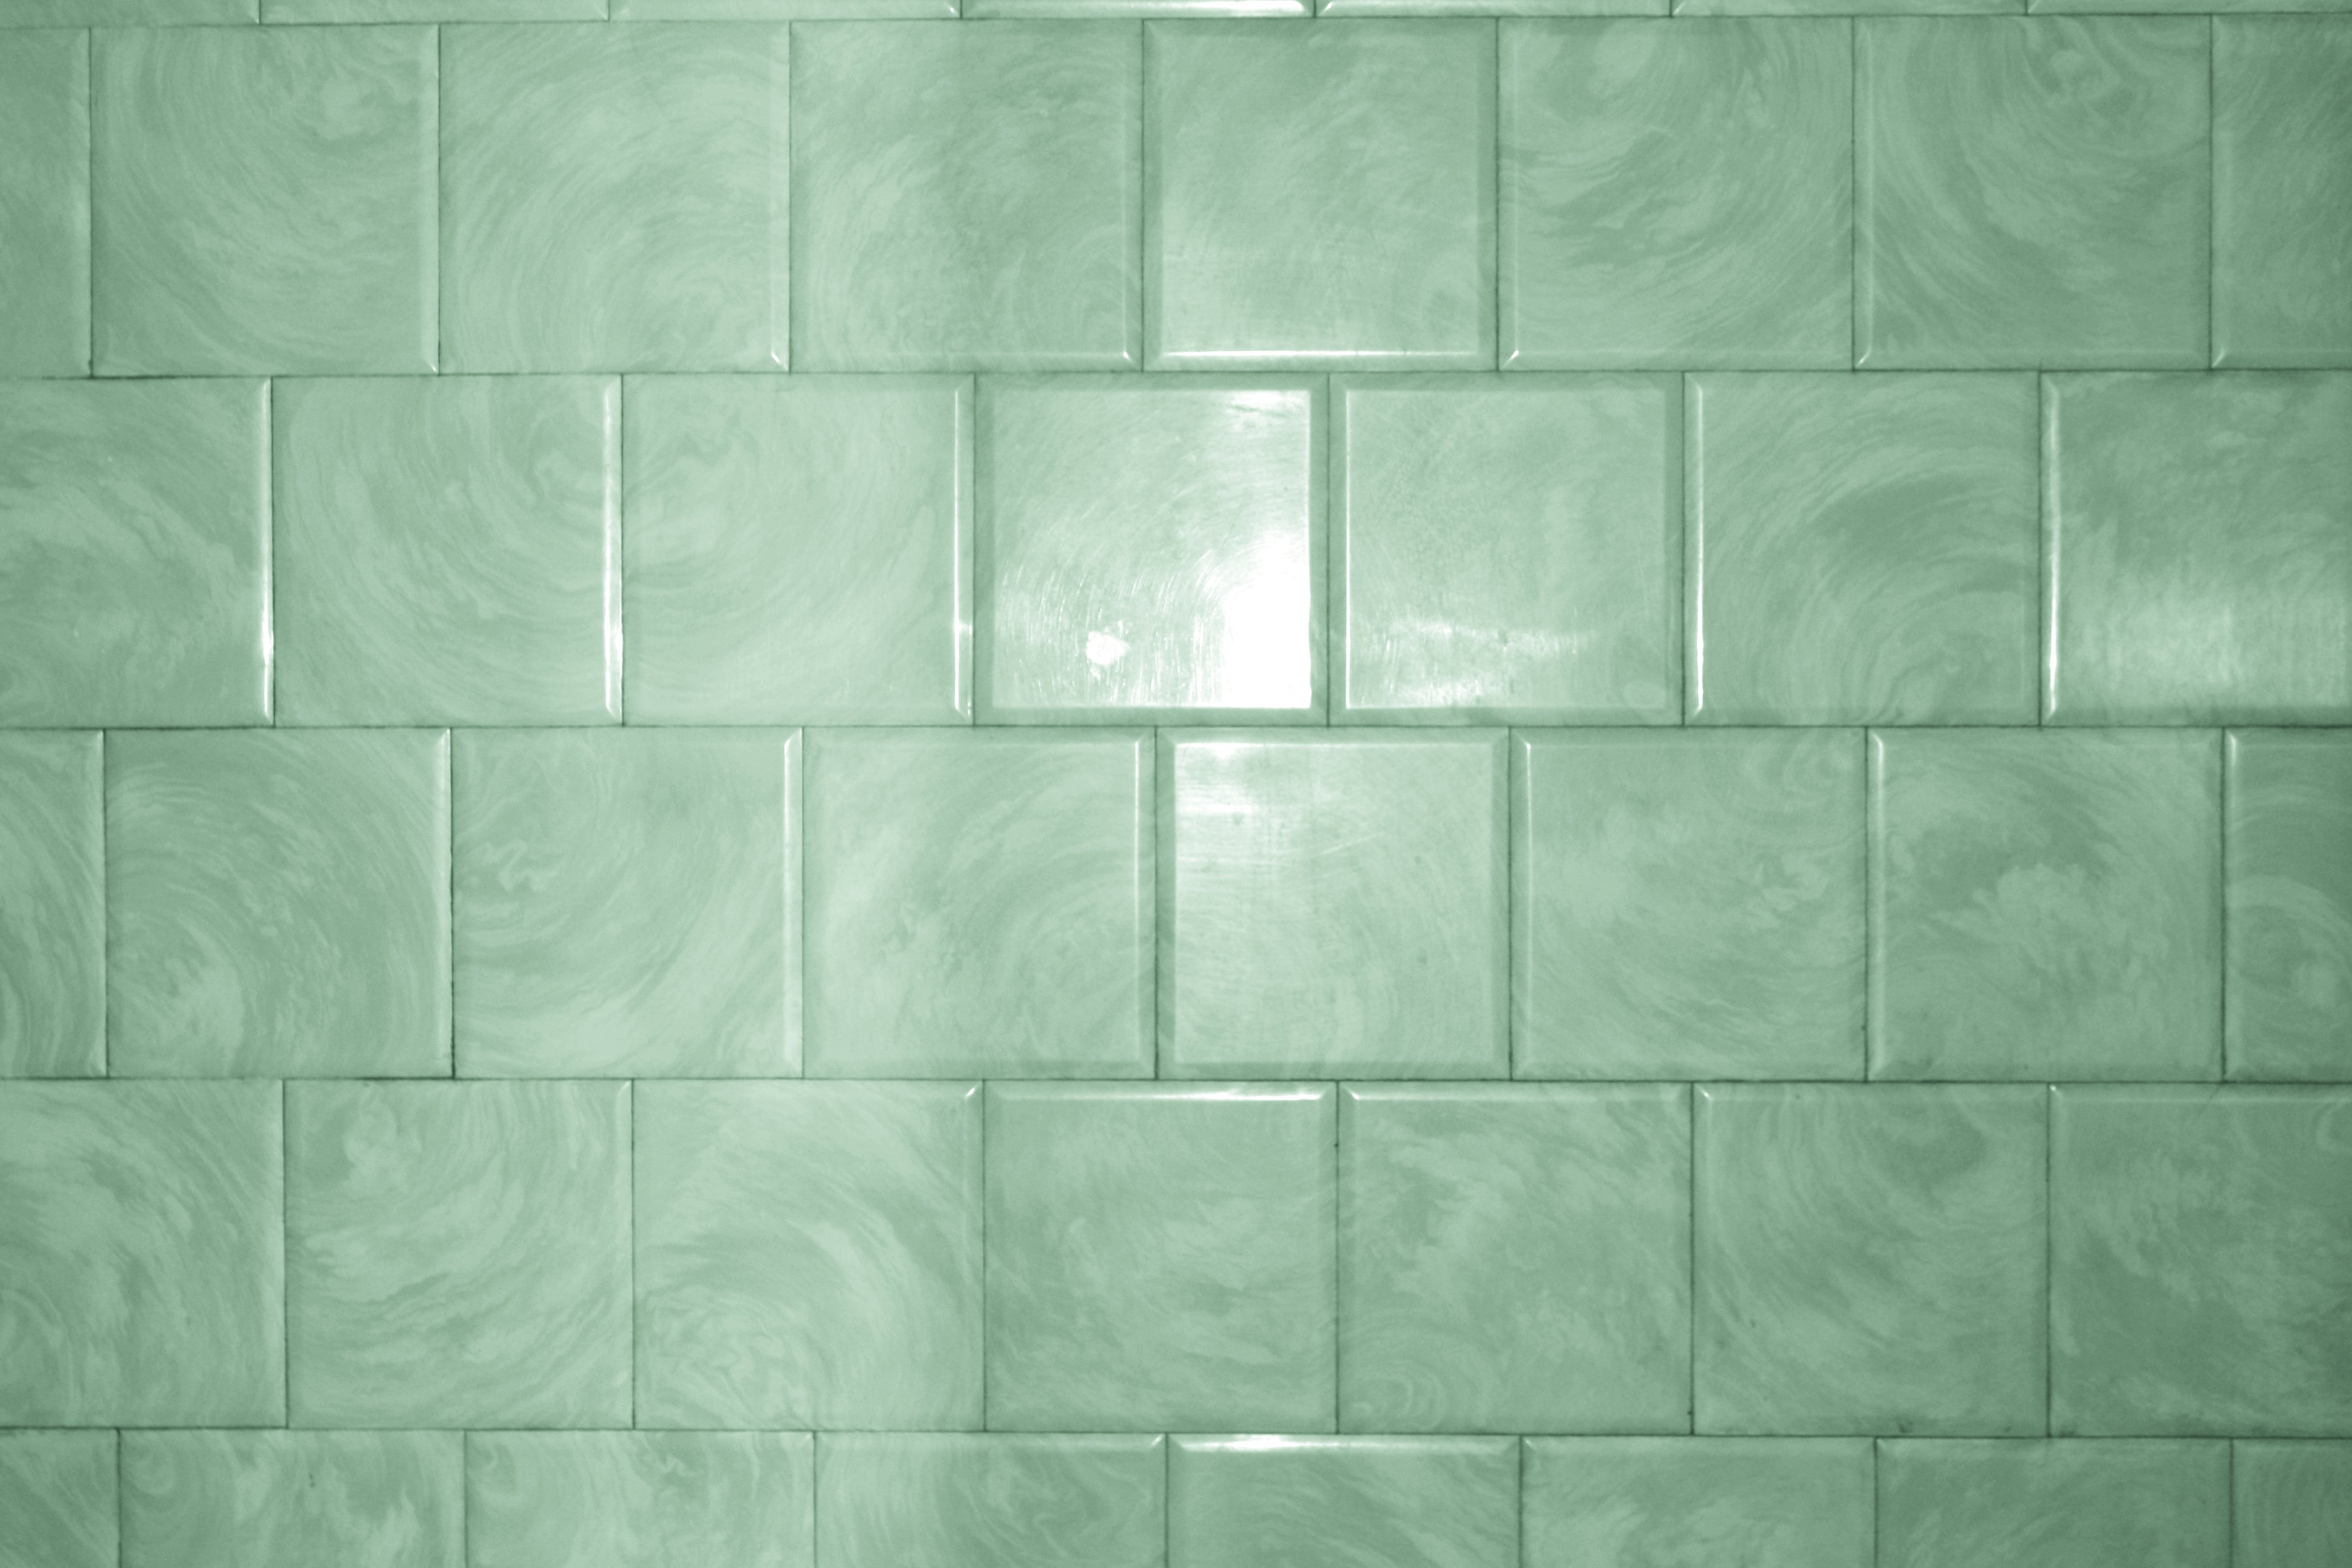 Green Bathroom Tile With Swirl Pattern Texture Picture Free Photograph Photos Public Domain